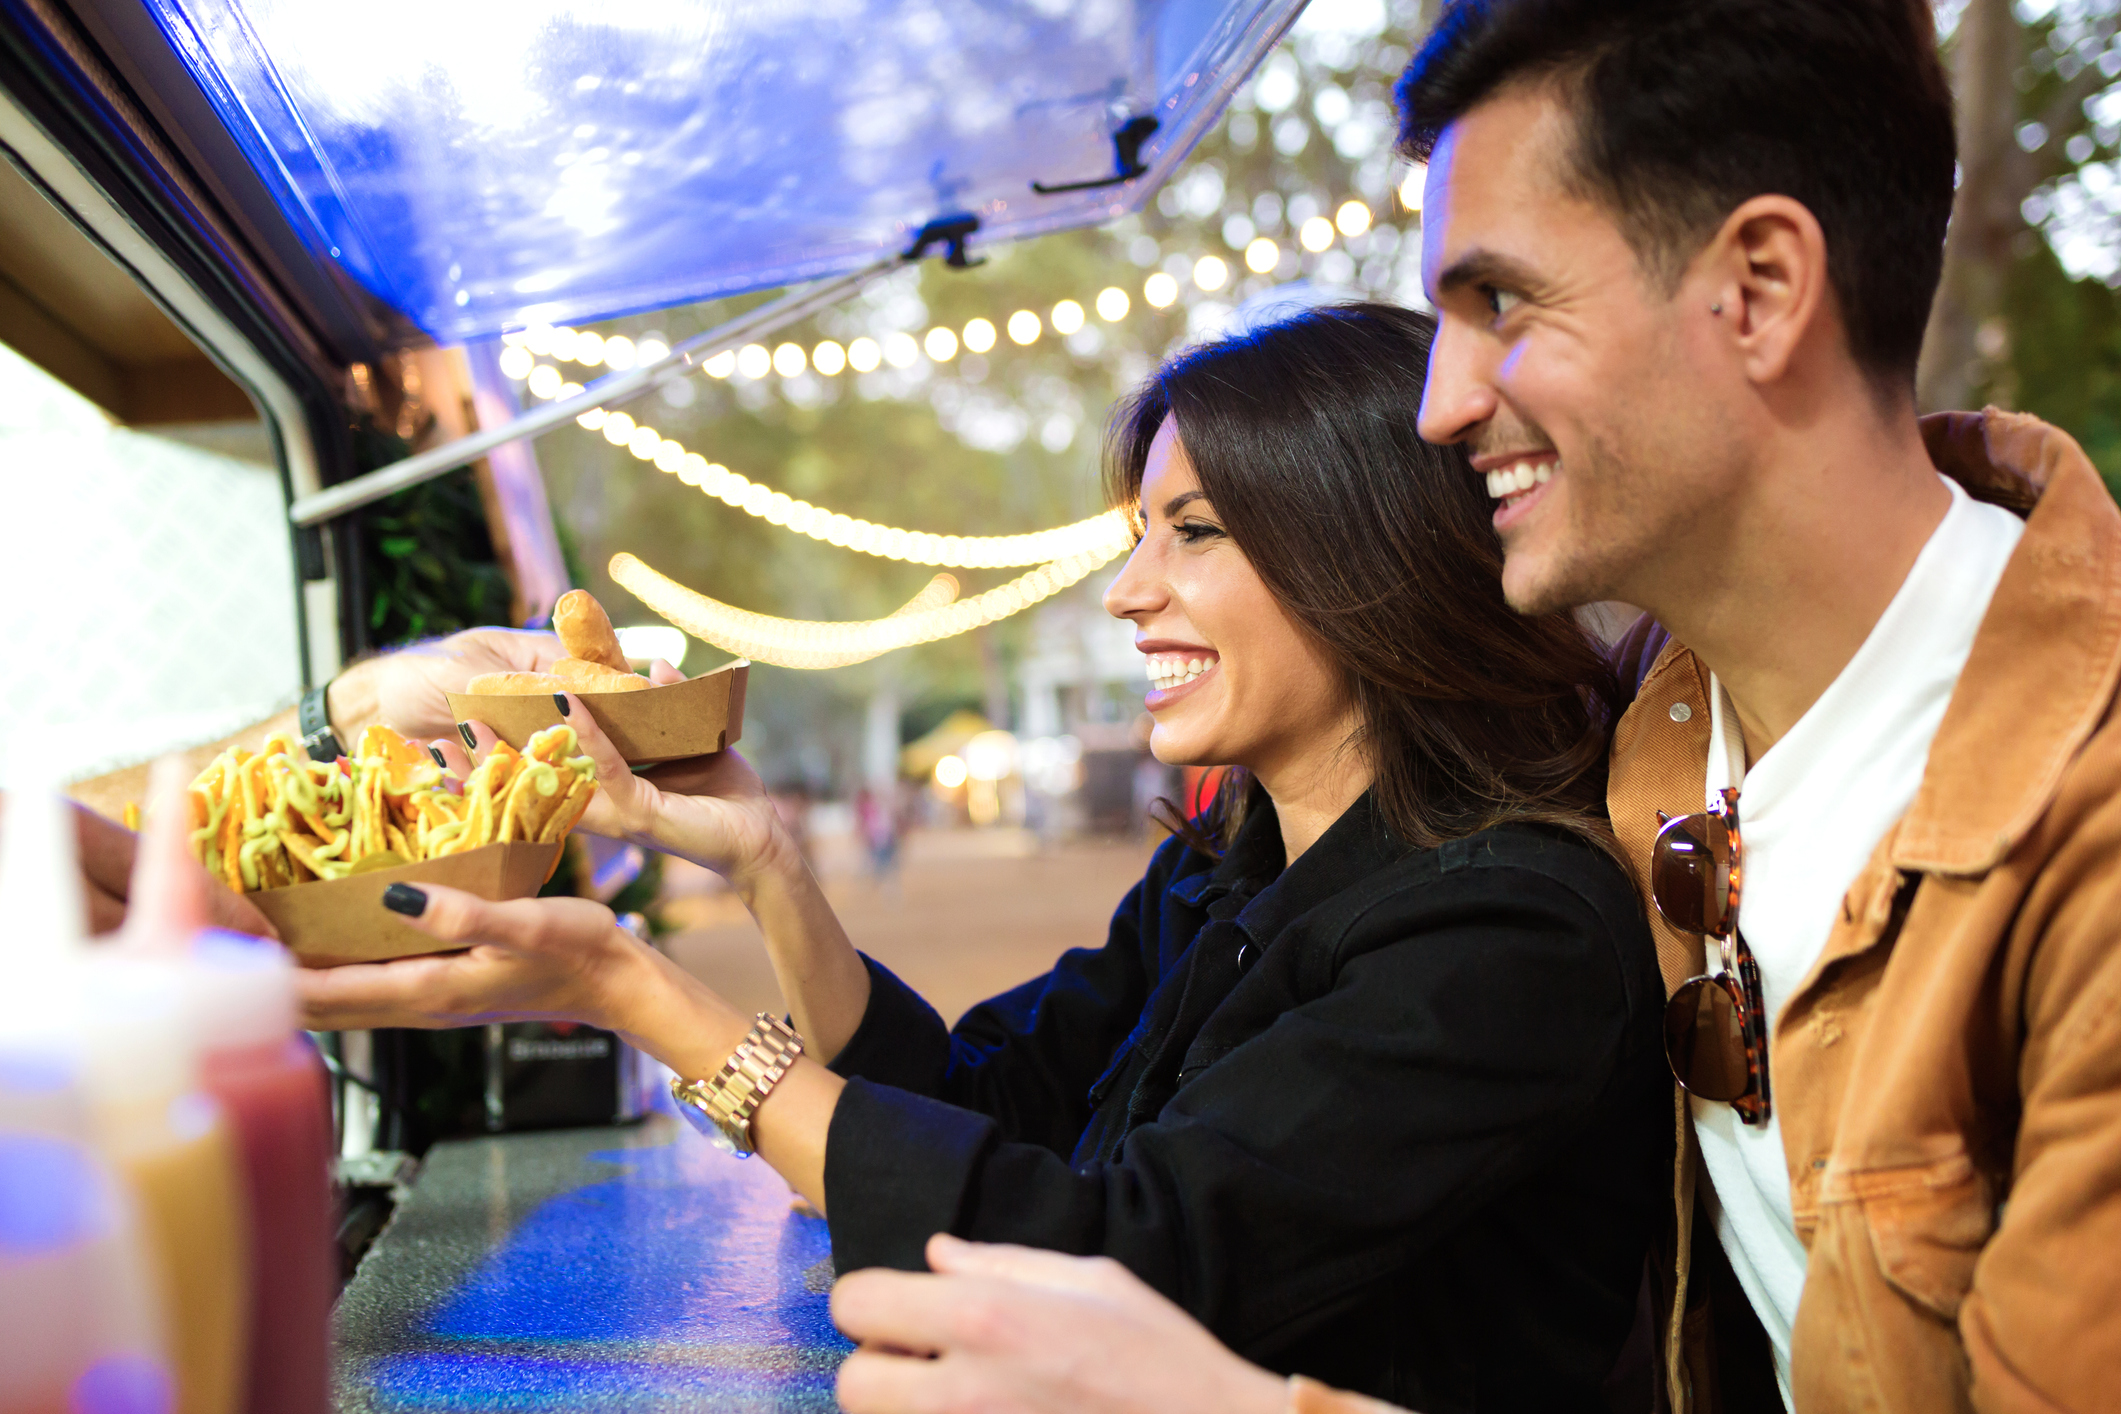 Couple getting food from food truck